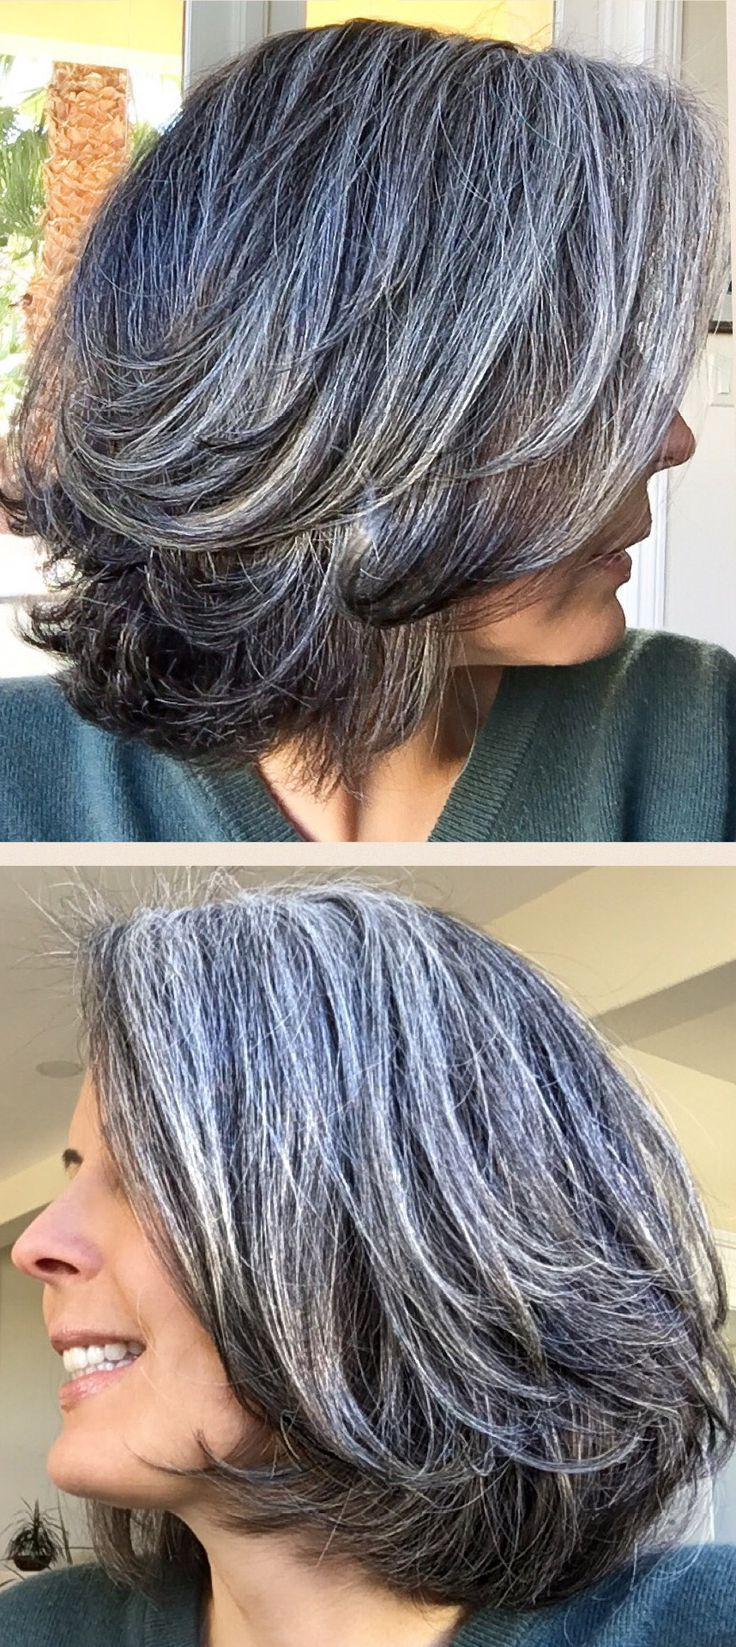 Highlights For Salt And Pepper Hair (View 15 of 20)